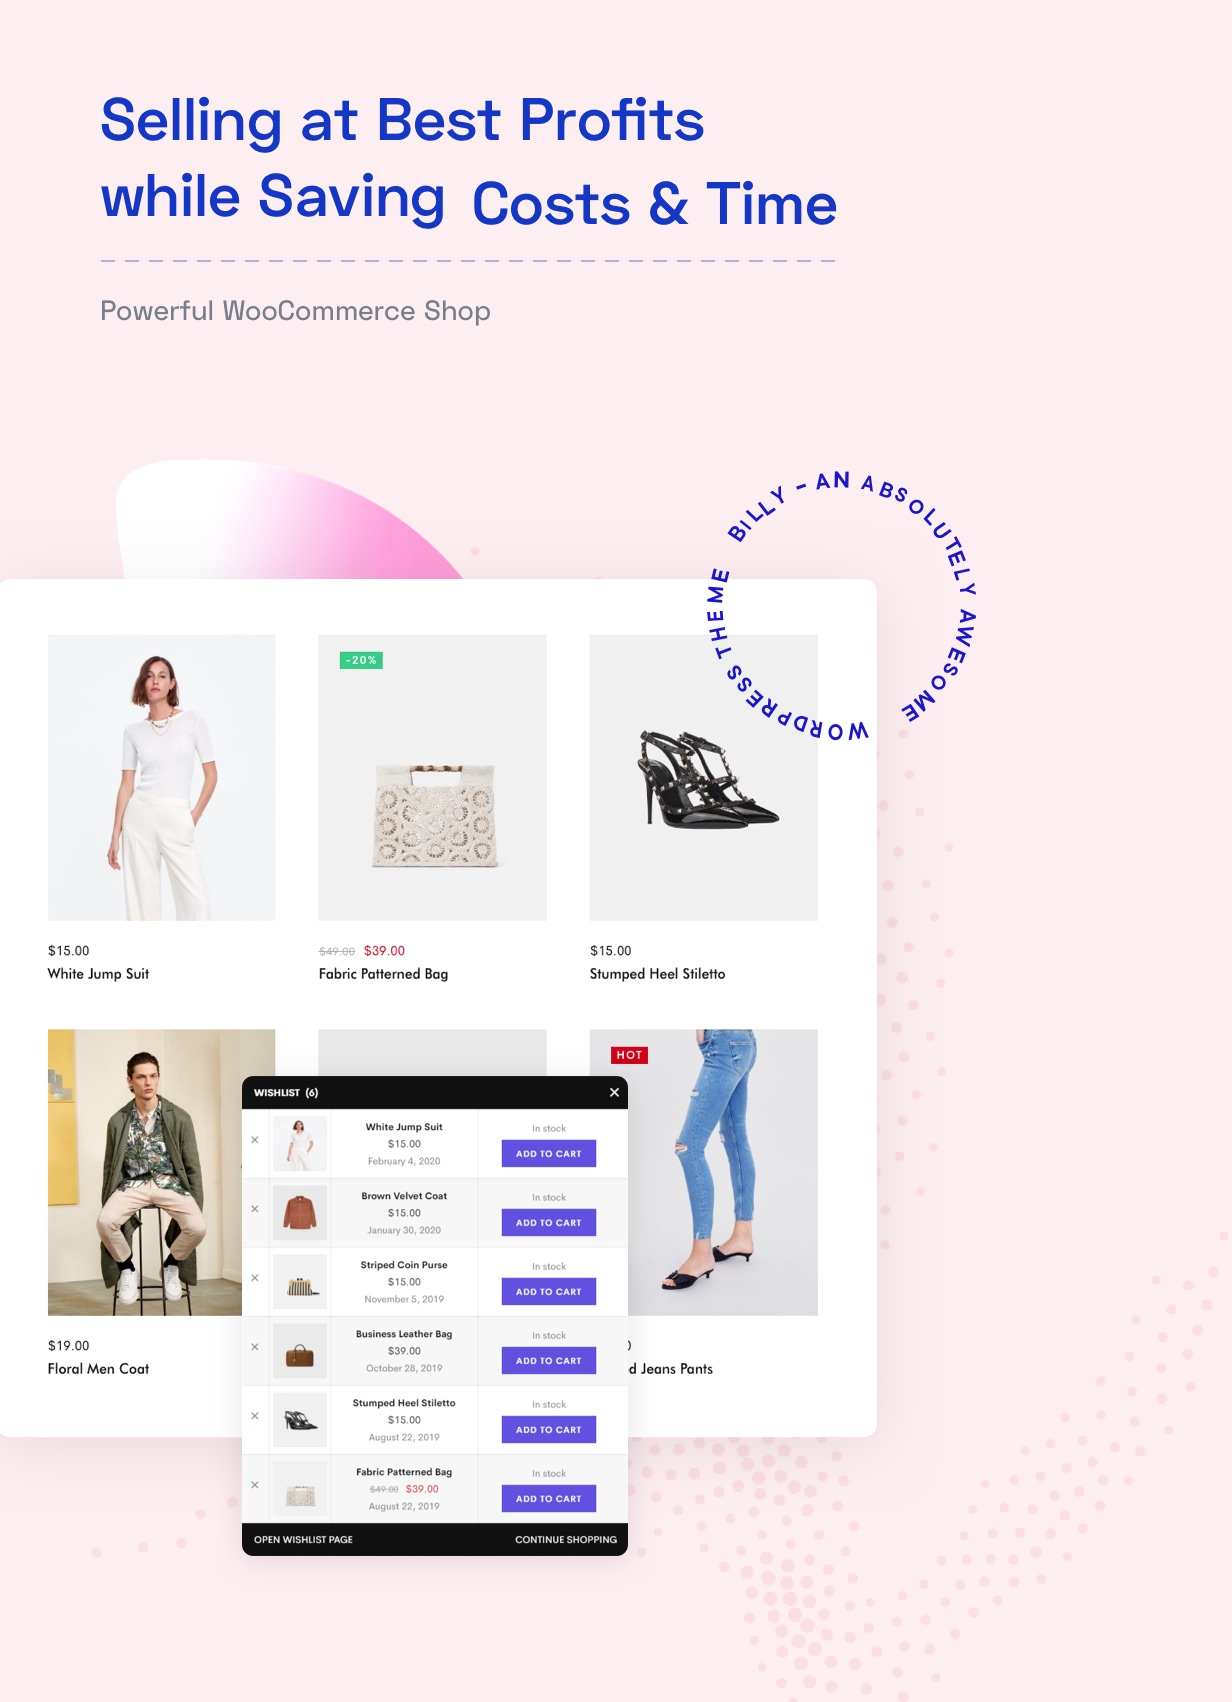 creative woocommerce shop selling